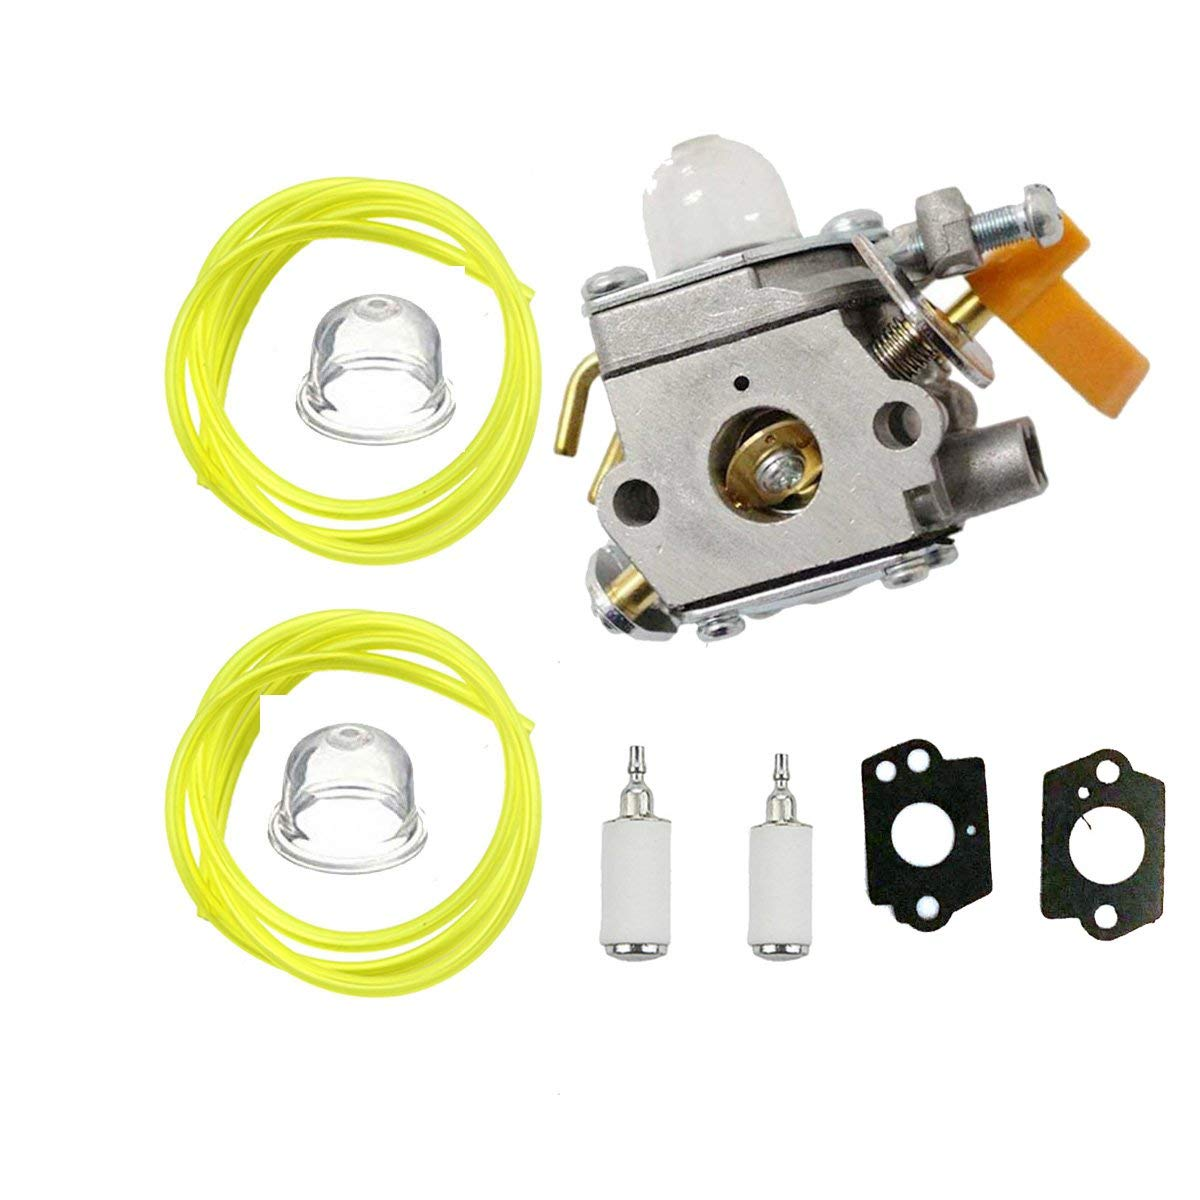 hight resolution of outgoings 308054034 308054014 308054028 carburetor with adjustment tool fuel line turn up kit for zama c1u h60d